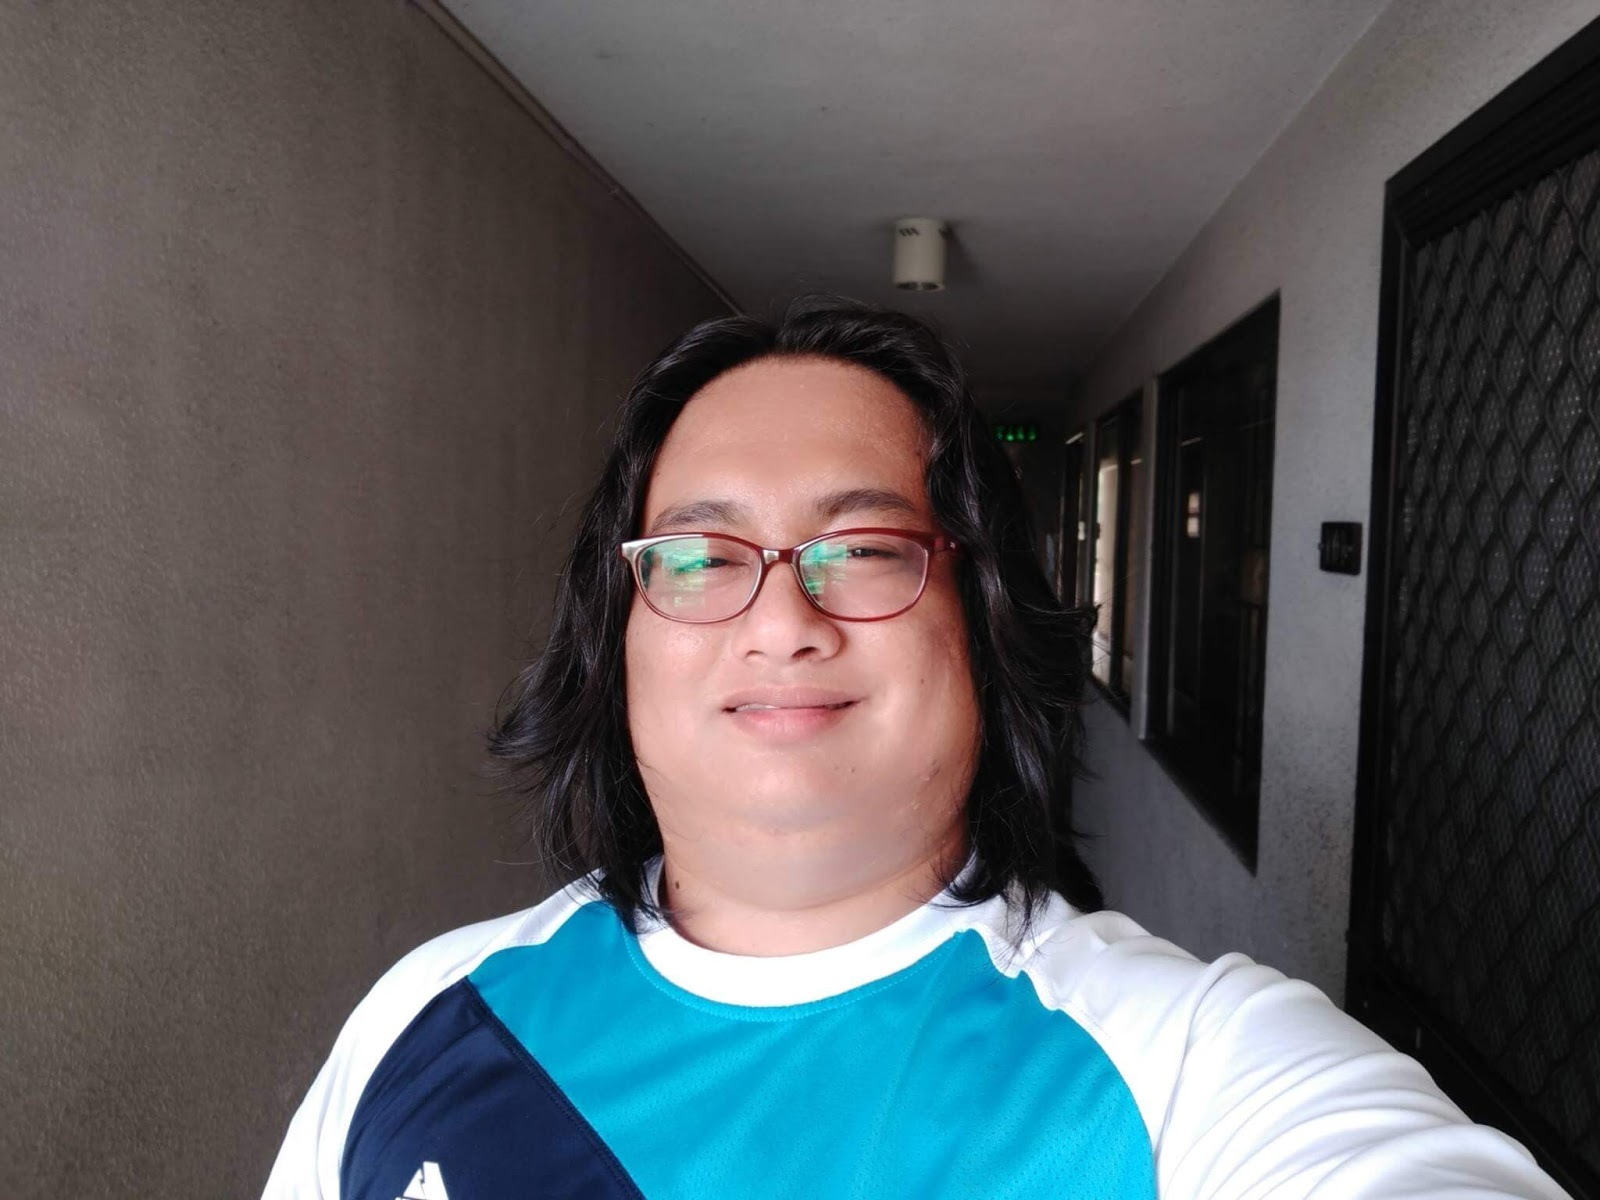 OPPO F3 Plus Camera Sample - Selfie